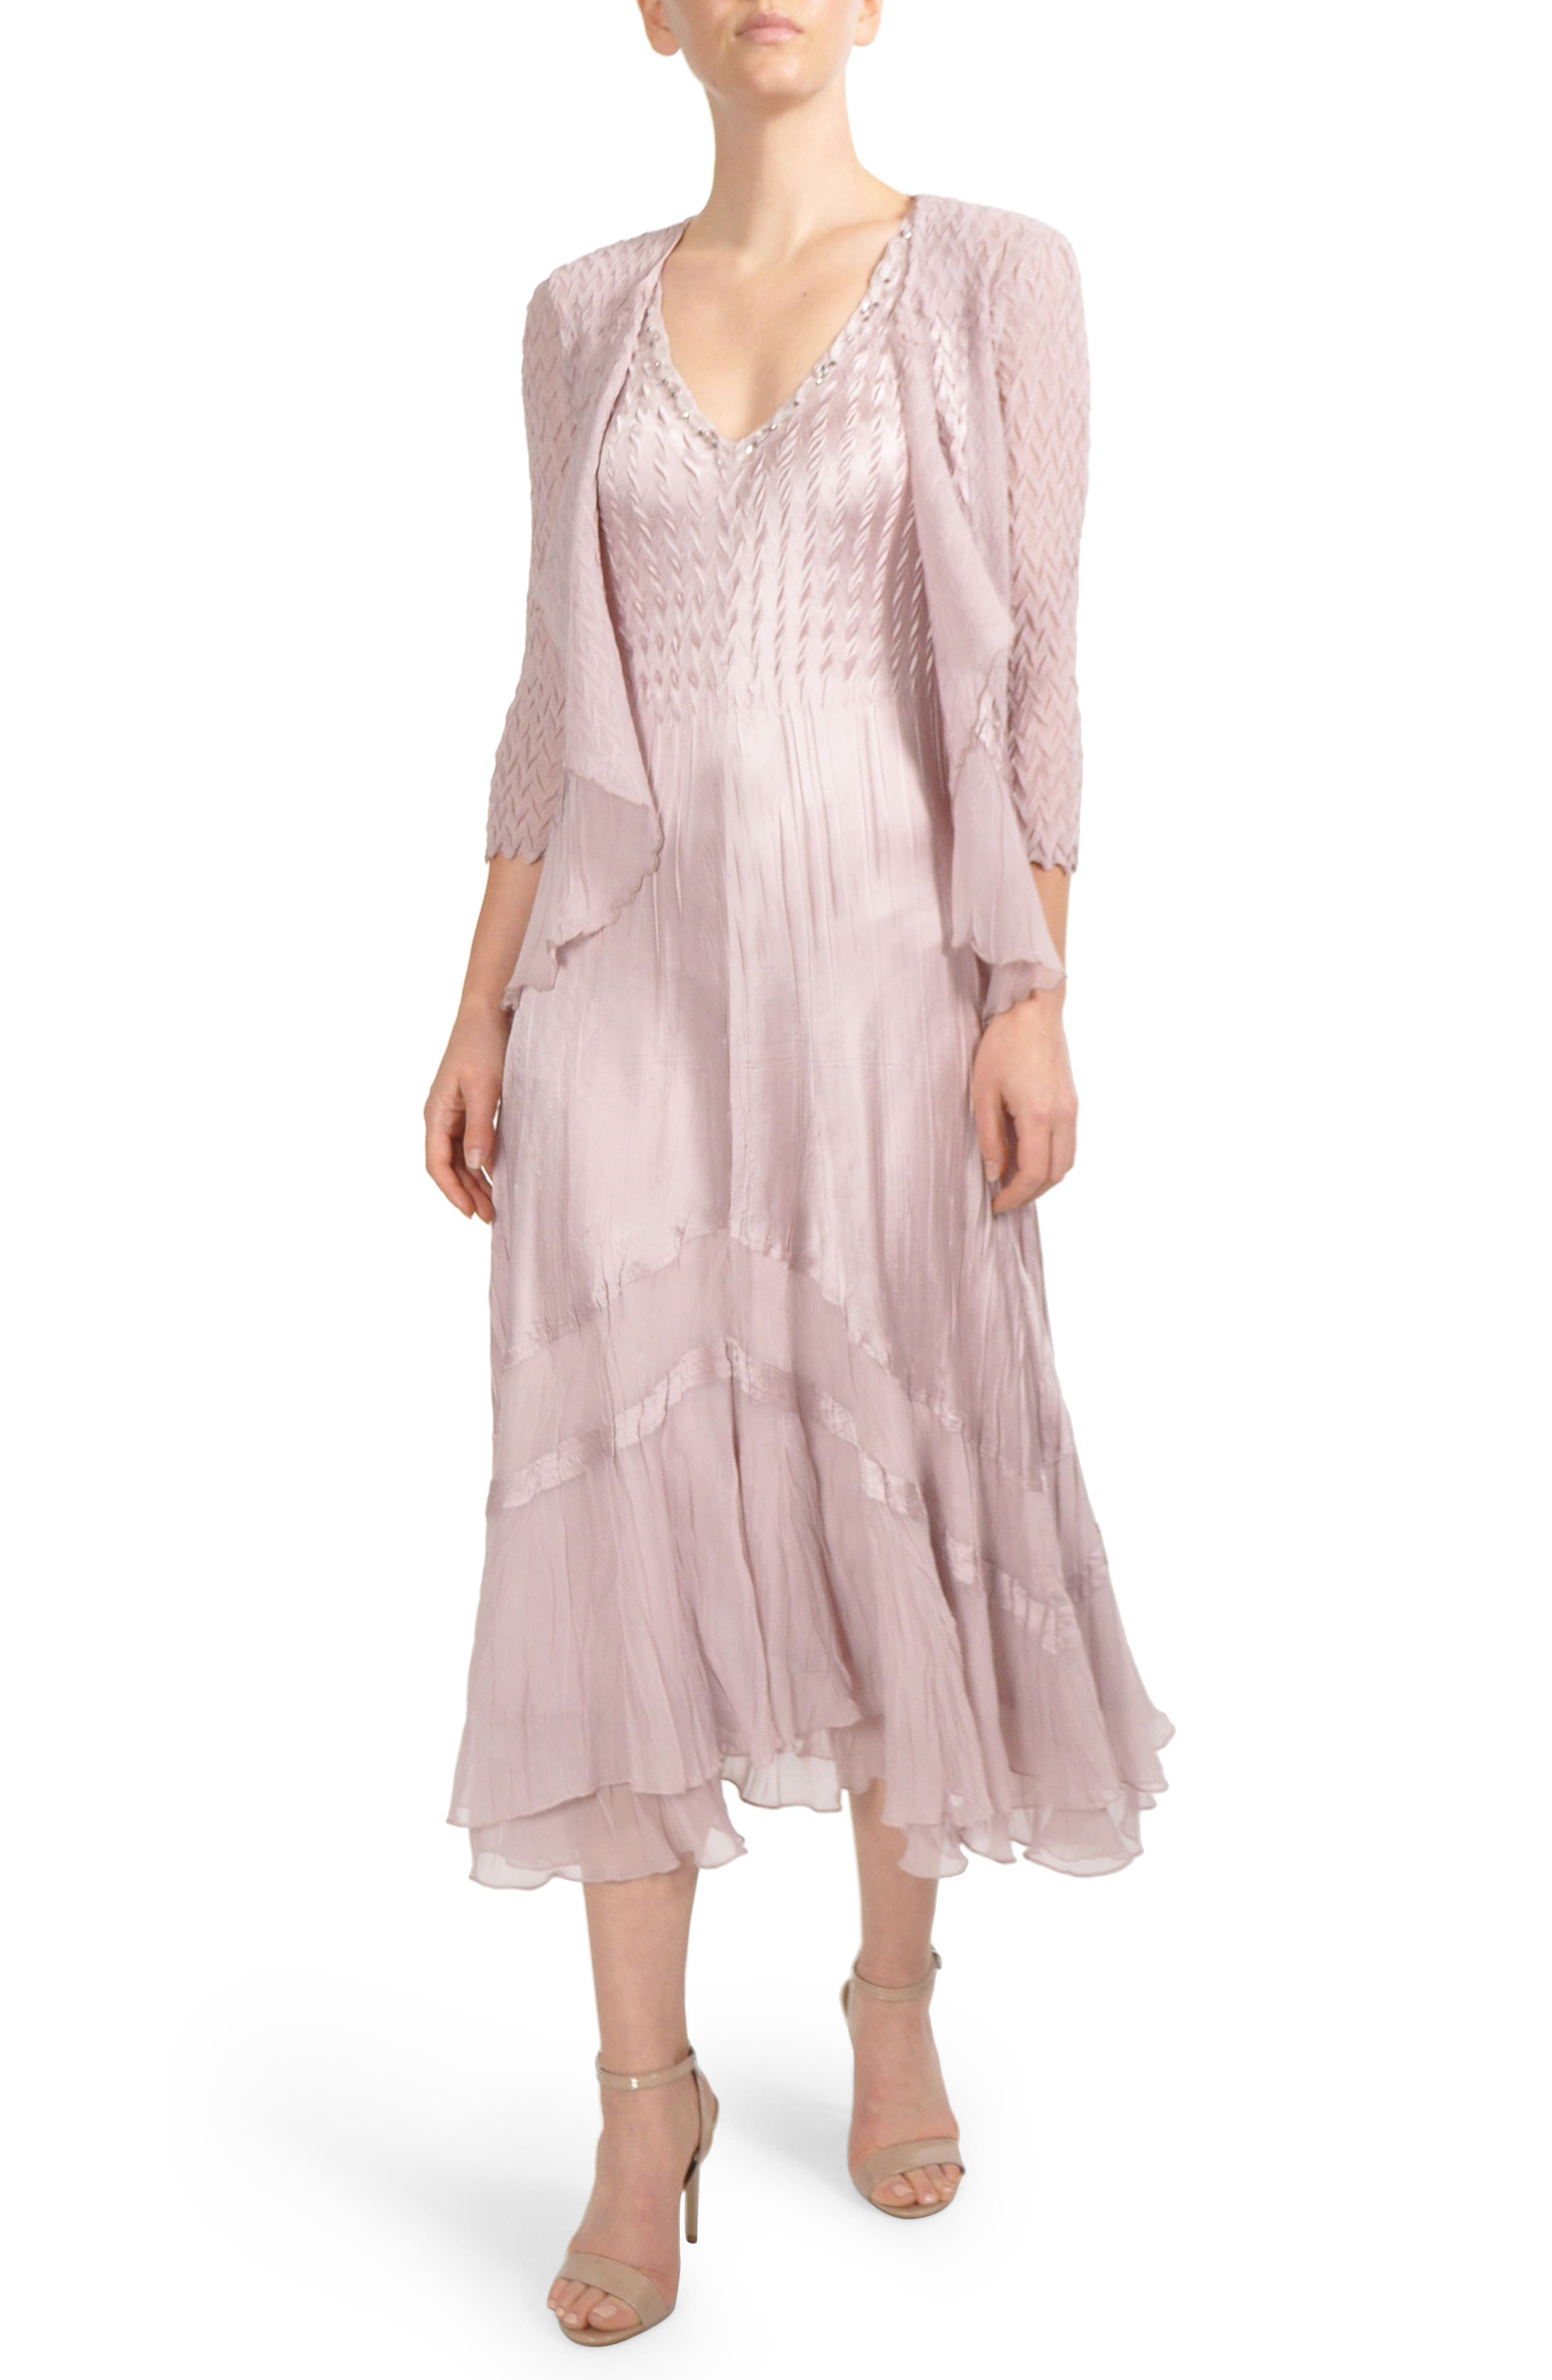 Embellished Tiered Hem Dress With Jacket,                             Main thumbnail 1, color,                             030